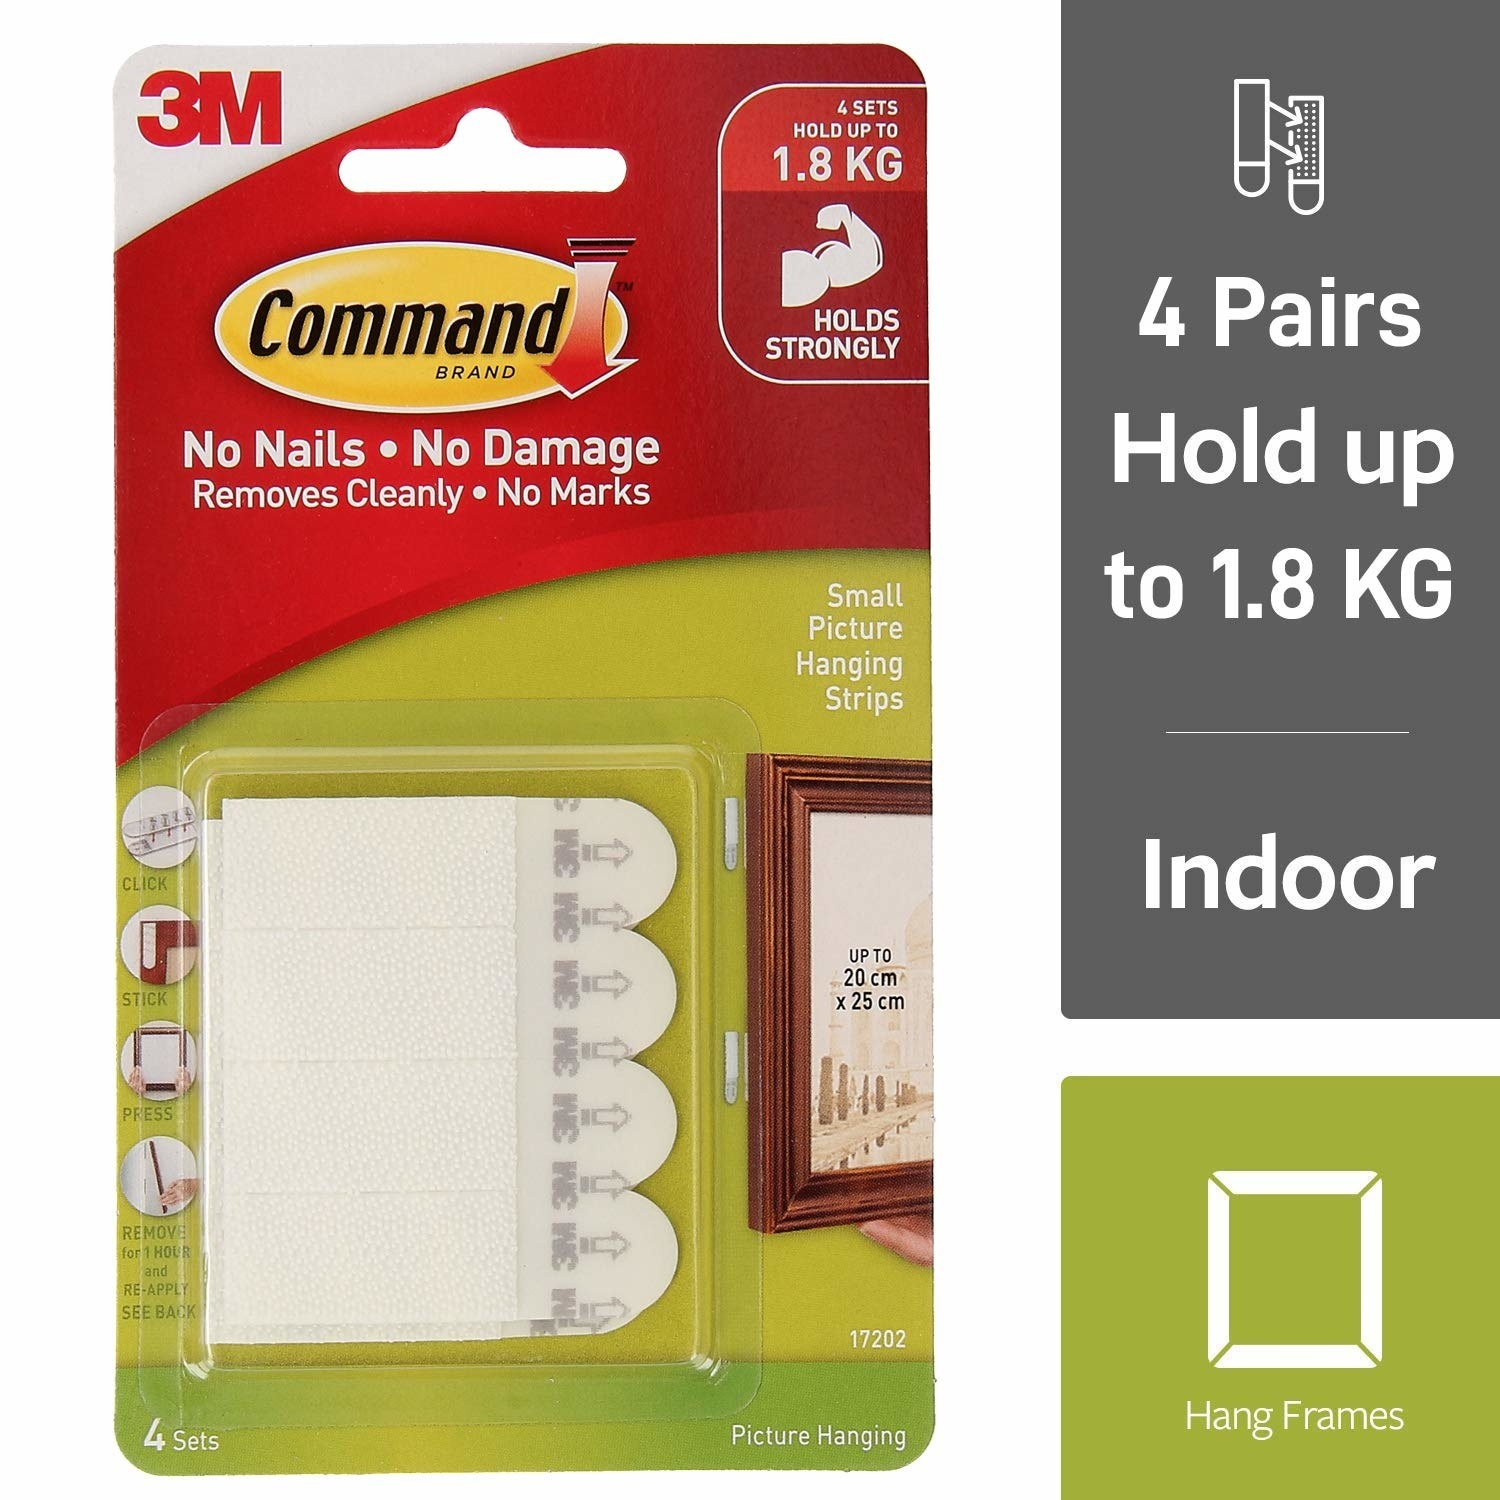 A set of Command picture hanging strips